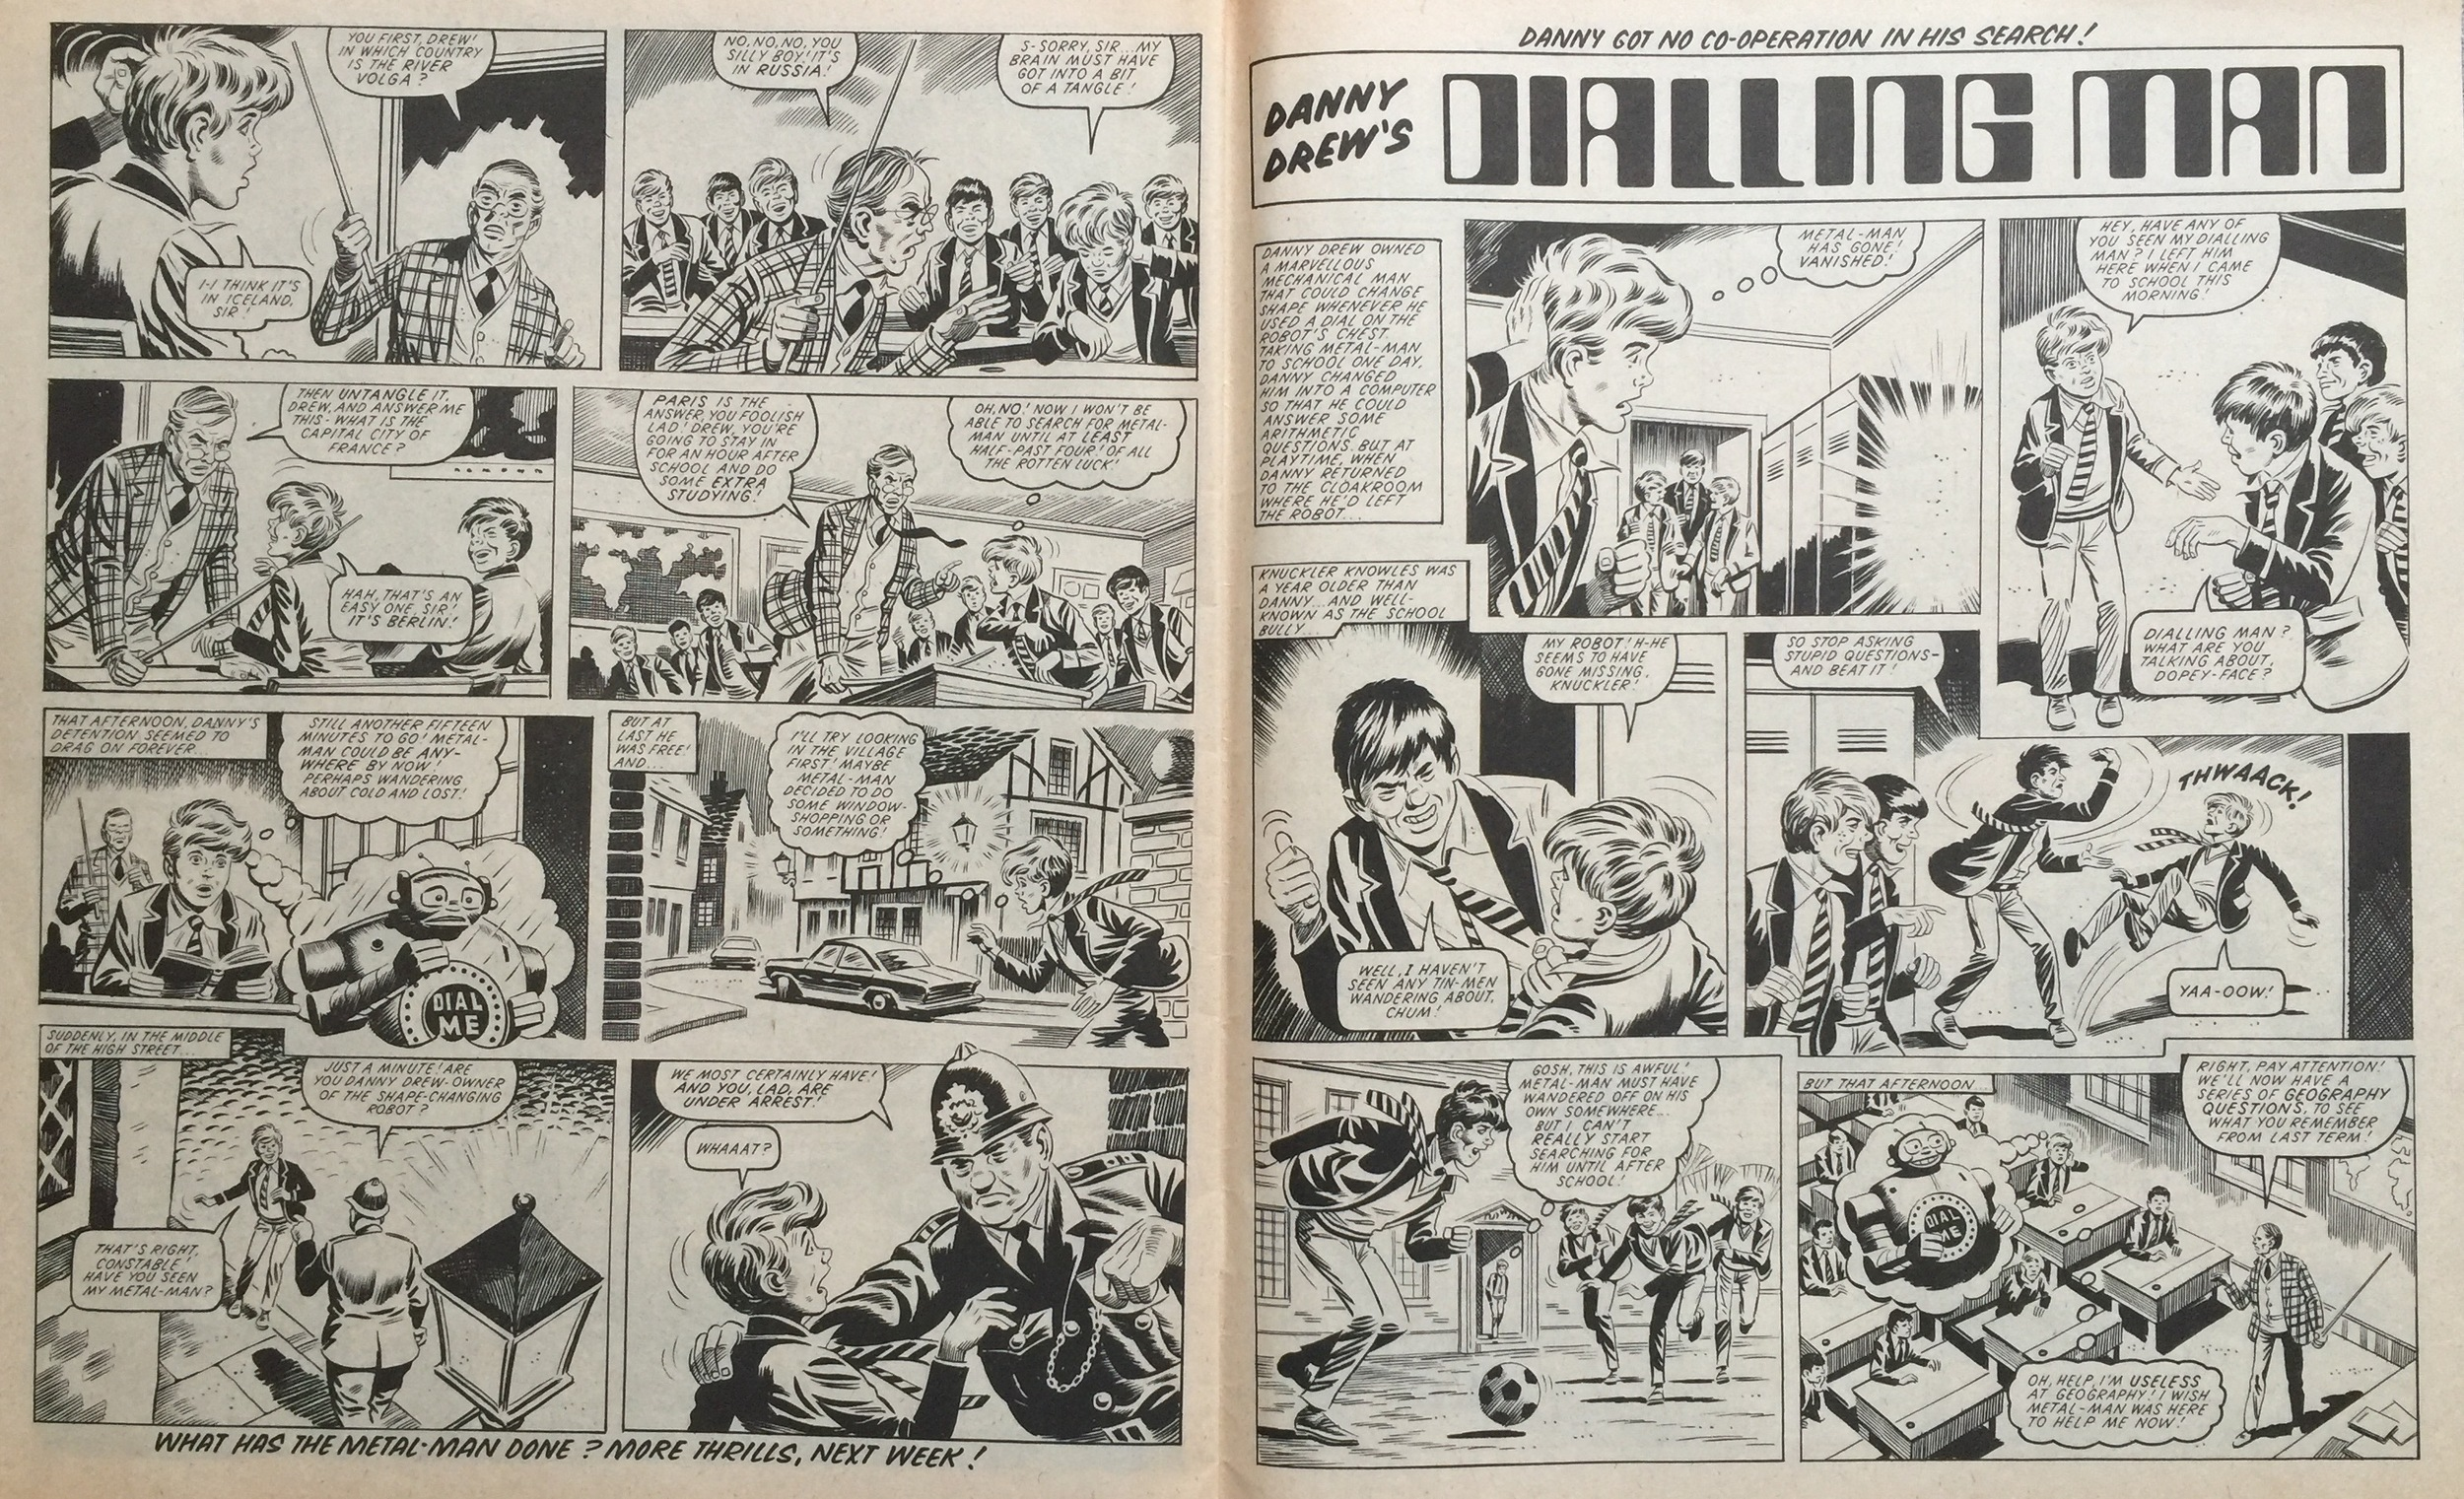 Danny Drew's Dialling Man: Ron Turner (artist). The two pages of this story were printed the wrong way round in this issue.